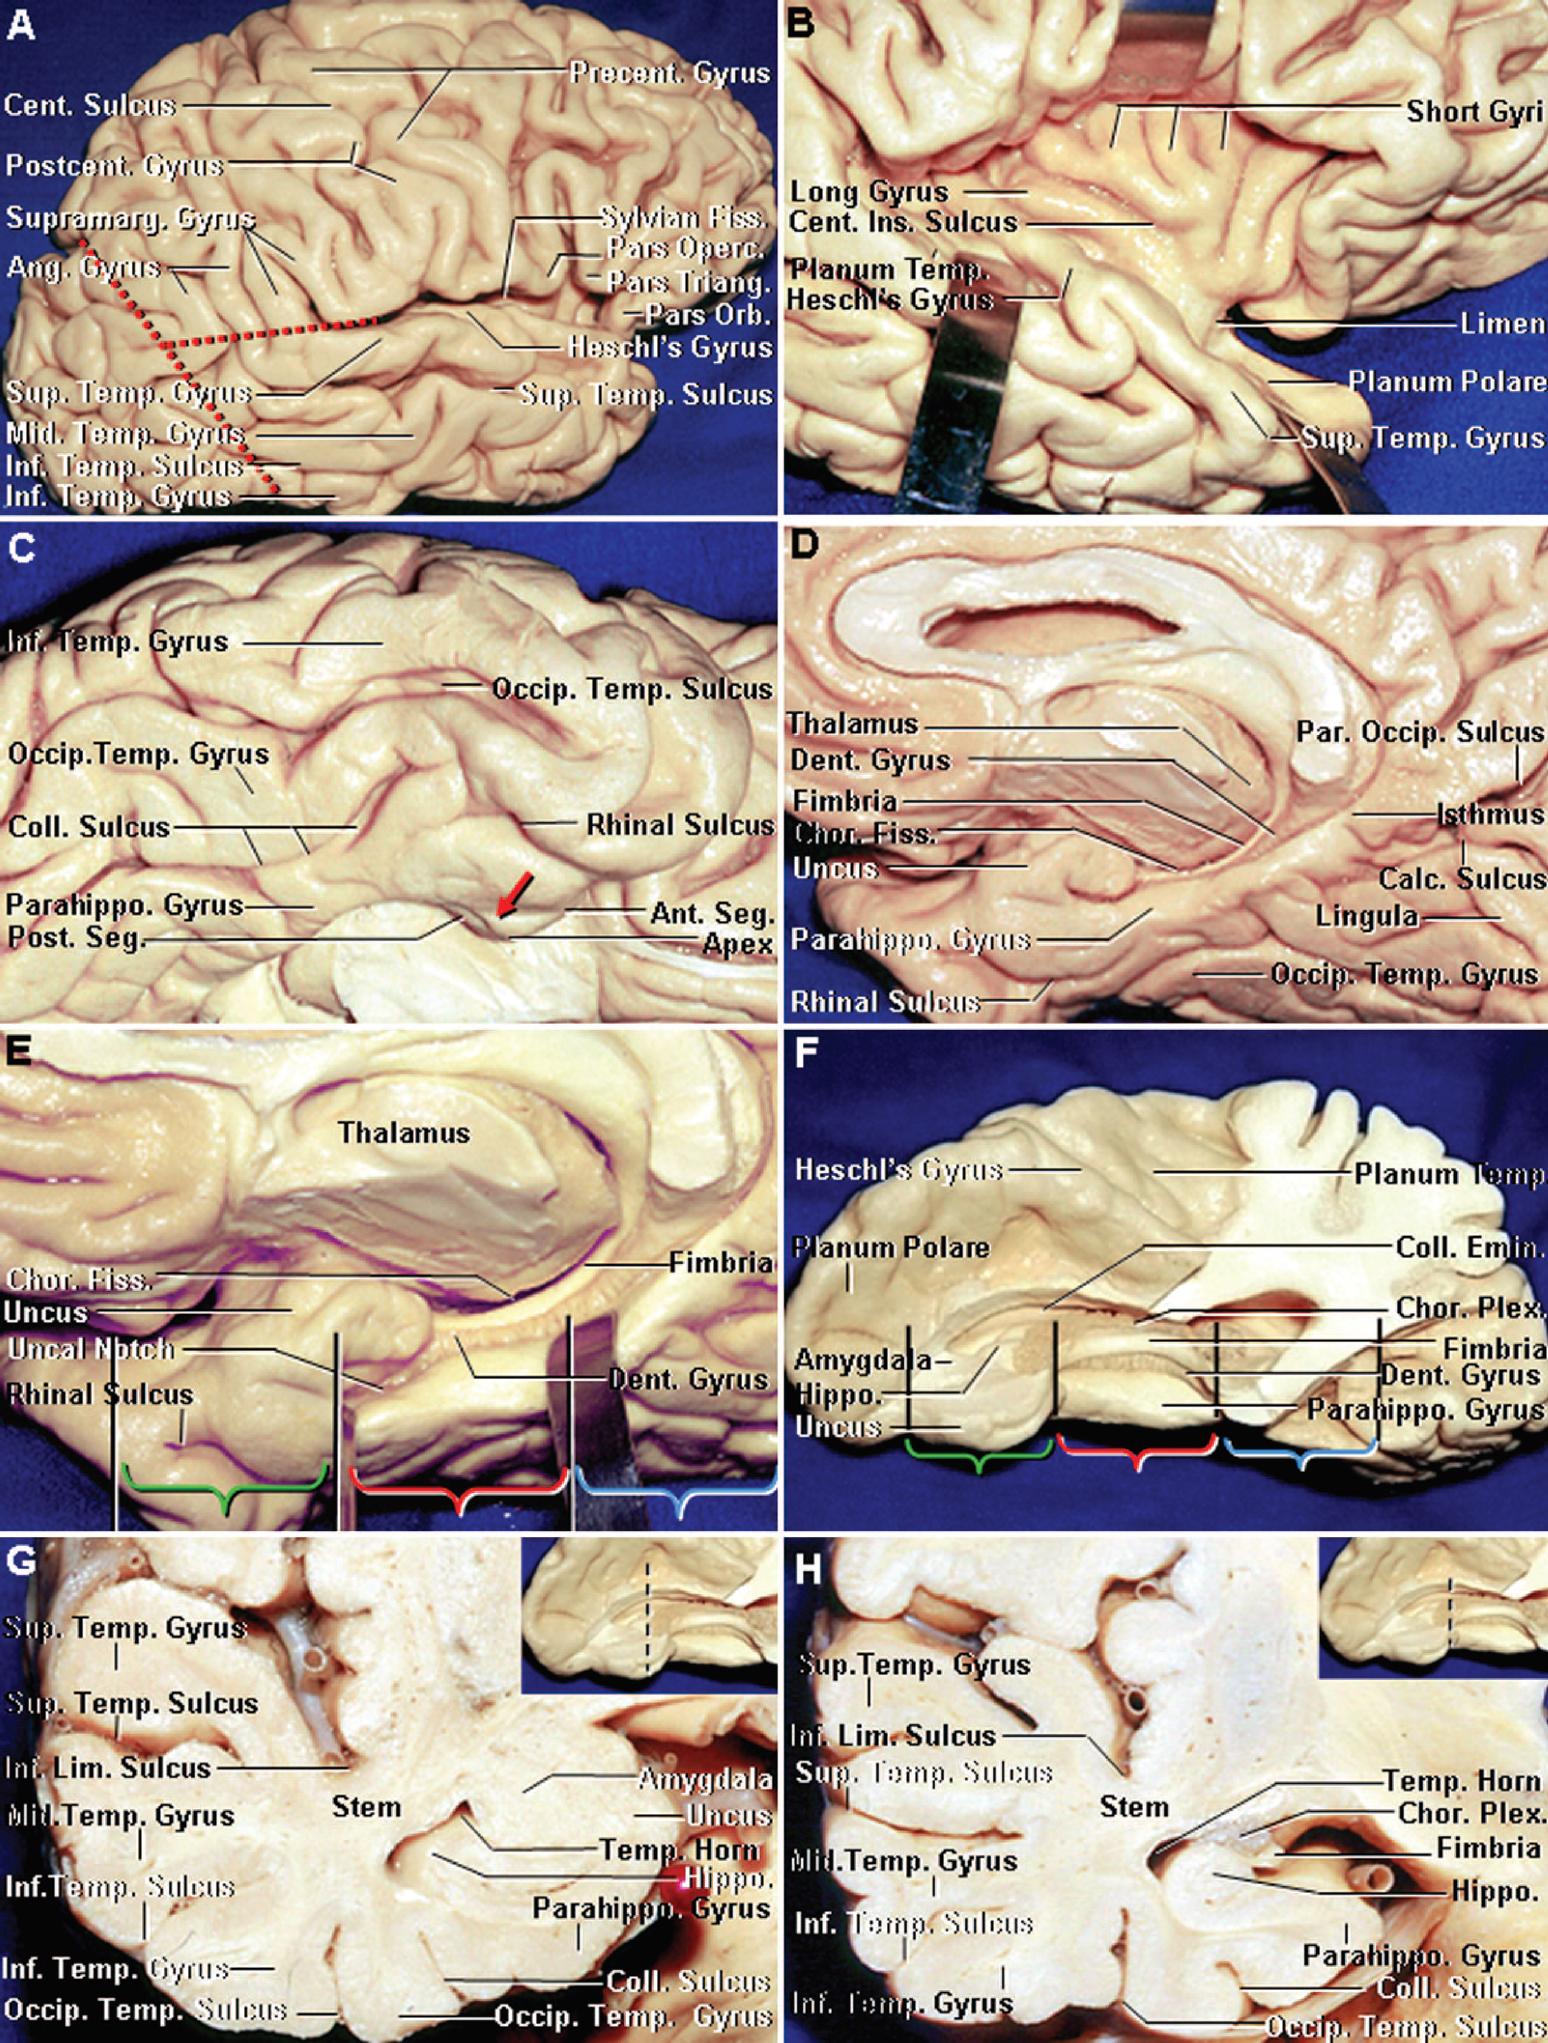 Figure 2. Dissection photographs showing cortical relationships. A, lateral view of the right cerebral hemisphere. The lateral temporal surface is divided by the superior and inferior temporal sulci into the superior, middle, and inferior temporal gyri. Both the temporal gyri and sulci are parallel to the sylvian fissure. The sylvian fissure and central sulcus are the most important landmarks on the lateral surface of the brain. The sylvian fissure extends backward and turns up into the supramarginal gyrus at its posterior end. The inferior frontal gyrus is composed of the pars orbitalis, pars triangularis, and pars opercularis. The angular gyrus wraps around the upturned posterior end of the superior temporal sulcus. The temporal lobe is separated from the parietal lobe by the sylvian fissure and the extended sylvian line, which extends backward along the long axis of the sylvian fissure; from the occipital lobe on the lateral convexity, by the inferior part of the lateral parietotemporal line, which runs from the impression of the parieto-occipital sulcus on the superior margin of the hemisphere to the preoccipital notch; from the occipital lobe on the lower surface by the basal parietotemporal line, which extends from the junction of the calcarine and parieto-occipital sulcus to the preoccipital notch; and from insula, by the inferior portion of the limiting sulcus of the insula. B, opercular lips of the sylvian fissure have been retracted to expose the insula and superior surface of the temporal lobe. The insula has a triangular shape with its apex directed anterior and inferior toward the limen insulae. The insula is encircled and separated from the frontal, parietal, and temporal opercula by a shallow limiting sulcus. The lower part of the limiting sulcus that borders the temporal lobe is referred to as the inferior limiting sulcus. The central sulcus of the insula separates the short gyri anteriorly from the long gyri posteriorly. The superior surface of the temporal lobe has two parts: the posteriorly placed planum polare, formed by the transverse temporal gyri, the most anterior of which is Heschl's gyrus, and the planum temporale, which forms the floor of the anterior part of the sylvian fissure. The temporal lobe is connected superiorly to the insula by the temporal stem and anteriorly to the basal frontal lobe by the limen insulae. C, basal view of the right temporal lobe. The basal temporal surface is traversed longitudinally by the occipitotemporal, collateral, and rhinal sulci that divide it from lateral to medial into the lower surface of the inferior temporal gyrus and the occipitotemporal (fusiform) and parahippocampal gyri. The anterior end of the parahippocampal gyrus deviates medially to form the uncus. The rhinal sulcus is located lateral to the uncus. The collateral sulcus may or may not be continuous anteriorly with the rhinal sulcus. The uncus has an anterior segment, an apex, and a posterior segment. The medial part of the uncus usually projects medial to and is often grooved (red arrow) by the tentorial edge. D, medial surface of the right cerebral hemisphere. The medial surface of the temporal lobe is the most complex of the medial cortical areas. It is composed of three longitudinal strips of neural tissue, one located above the other. The most inferior strip is formed by the parahippocampal gyrus, the middle strip by the dentate gyrus, and the superior strip by the fimbria of the fornix. The choroid fissure in the temporal horn is located between the fimbria and the lower surface of the thalamus. The parahippocampal gyrus forms most of the medial surface of the temporal lobe. Anteriorly, the parahippocampal gyrus deviates medially to form the uncus. Posteriorly, it is intersected by the calcarine sulcus, which divides the posterior portion of the parahippocampal gyrus into an upper part that is continuous with the isthmus of the cingulate gyrus and a lower part that is continuous with the lingula. E, enlarged view of D. The parahippocampal gyrus has been retracted to expose the dentate gyrus. The parahippocampal and dentate gyri are separated by the hippocampal sulcus, and the dentate gyrus and fimbria are separated by the fimbriodentate sulcus. In the temporal horn, the choroid fissure is located between thalamus and fimbria of fornix. The medial temporal region is divided into three parts: anterior, middle, and posterior. The anterior part (green brackets) extends posteriorly from the anterior end of the rhinal sulcus and uncus to a transverse line at the level of the inferior choroidal point. The middle part (red brackets) extends posteriorly from the inferior choroidal point to a transverse line passing at the level of the quadrigeminal plate. The posterior part (blue brackets) extends from the quadrigeminal plate to the level of the basal parietotemporal line, which connects the preoccipital notch to the lower end of the parieto-occipital sulcus. F, superior view of the right temporal lobe with the anterior, middle, and posterior part bracketed as in E. The upper surface of the temporal lobe forms the floor of the sylvian fissure and presents two distinct parts: the planum polare anteriorly and the planum temporale posteriorly. The planum polare is free of gyri, and its lateral edge is formed by the superior temporal gyrus. The planum temporale is formed by the transverse temporal gyri. The inferior choroidal point, the lower end of the choroidal fissure, is located just behind the uncus and head of the hippocampus. The amygdala, located predominantly within the boundaries of the uncus, forms most of the anterior segment of the uncus and the anterior wall of the temporal horn. Superiorly, the amygdala blends into the globus pallidus without any clear demarcation. The hippocampus sits in the floor of the temporal horn. The head of the hippocampus is directed anteriorly and medially and is buried in the upper half of the posterior segment of the uncus. G, coronal section of a right temporal lobe at the level of the apex of the uncus (insert). The temporal stem, the layer of white and gray matter that connects the temporal lobe to the lower insula, is positioned above the temporal horn. H, coronal section of a right temporal lobe at the level of the inferior choroidal point (insert), which is positioned at the junction of the anterior and middle portions of the medial temporal lobe. The inferior choroidal point is located at the posterior edge of the uncus and at the anterior end of the choroid plexus and choroidal fissure in the temporal horn. Ang., angular; Ant., anterior; Calc., calcarine; Cent., central; Chor., choroidal or choroid; Coll., collateral; Dent., dentate; Emin., eminence; Fiss., fissure; Hippo., hippocampus; Inf., inferior; Ins., insular; Lim., limiting; Mid., middle; Occip., occipital; Operc., opercularis; Orb., orbitalis; Par. Occip., parieto-occipital; Parahippo., parahippocampal; Plex., plexus; Post., posterior; Postcent., postcentral; Precent., precentral; Seg., segment; Sup., superior; Supramarg., supramarginal; Temp., temporal, temporale; Triang., triangularis. (Images courtesy of AL Rhoton, Jr.)